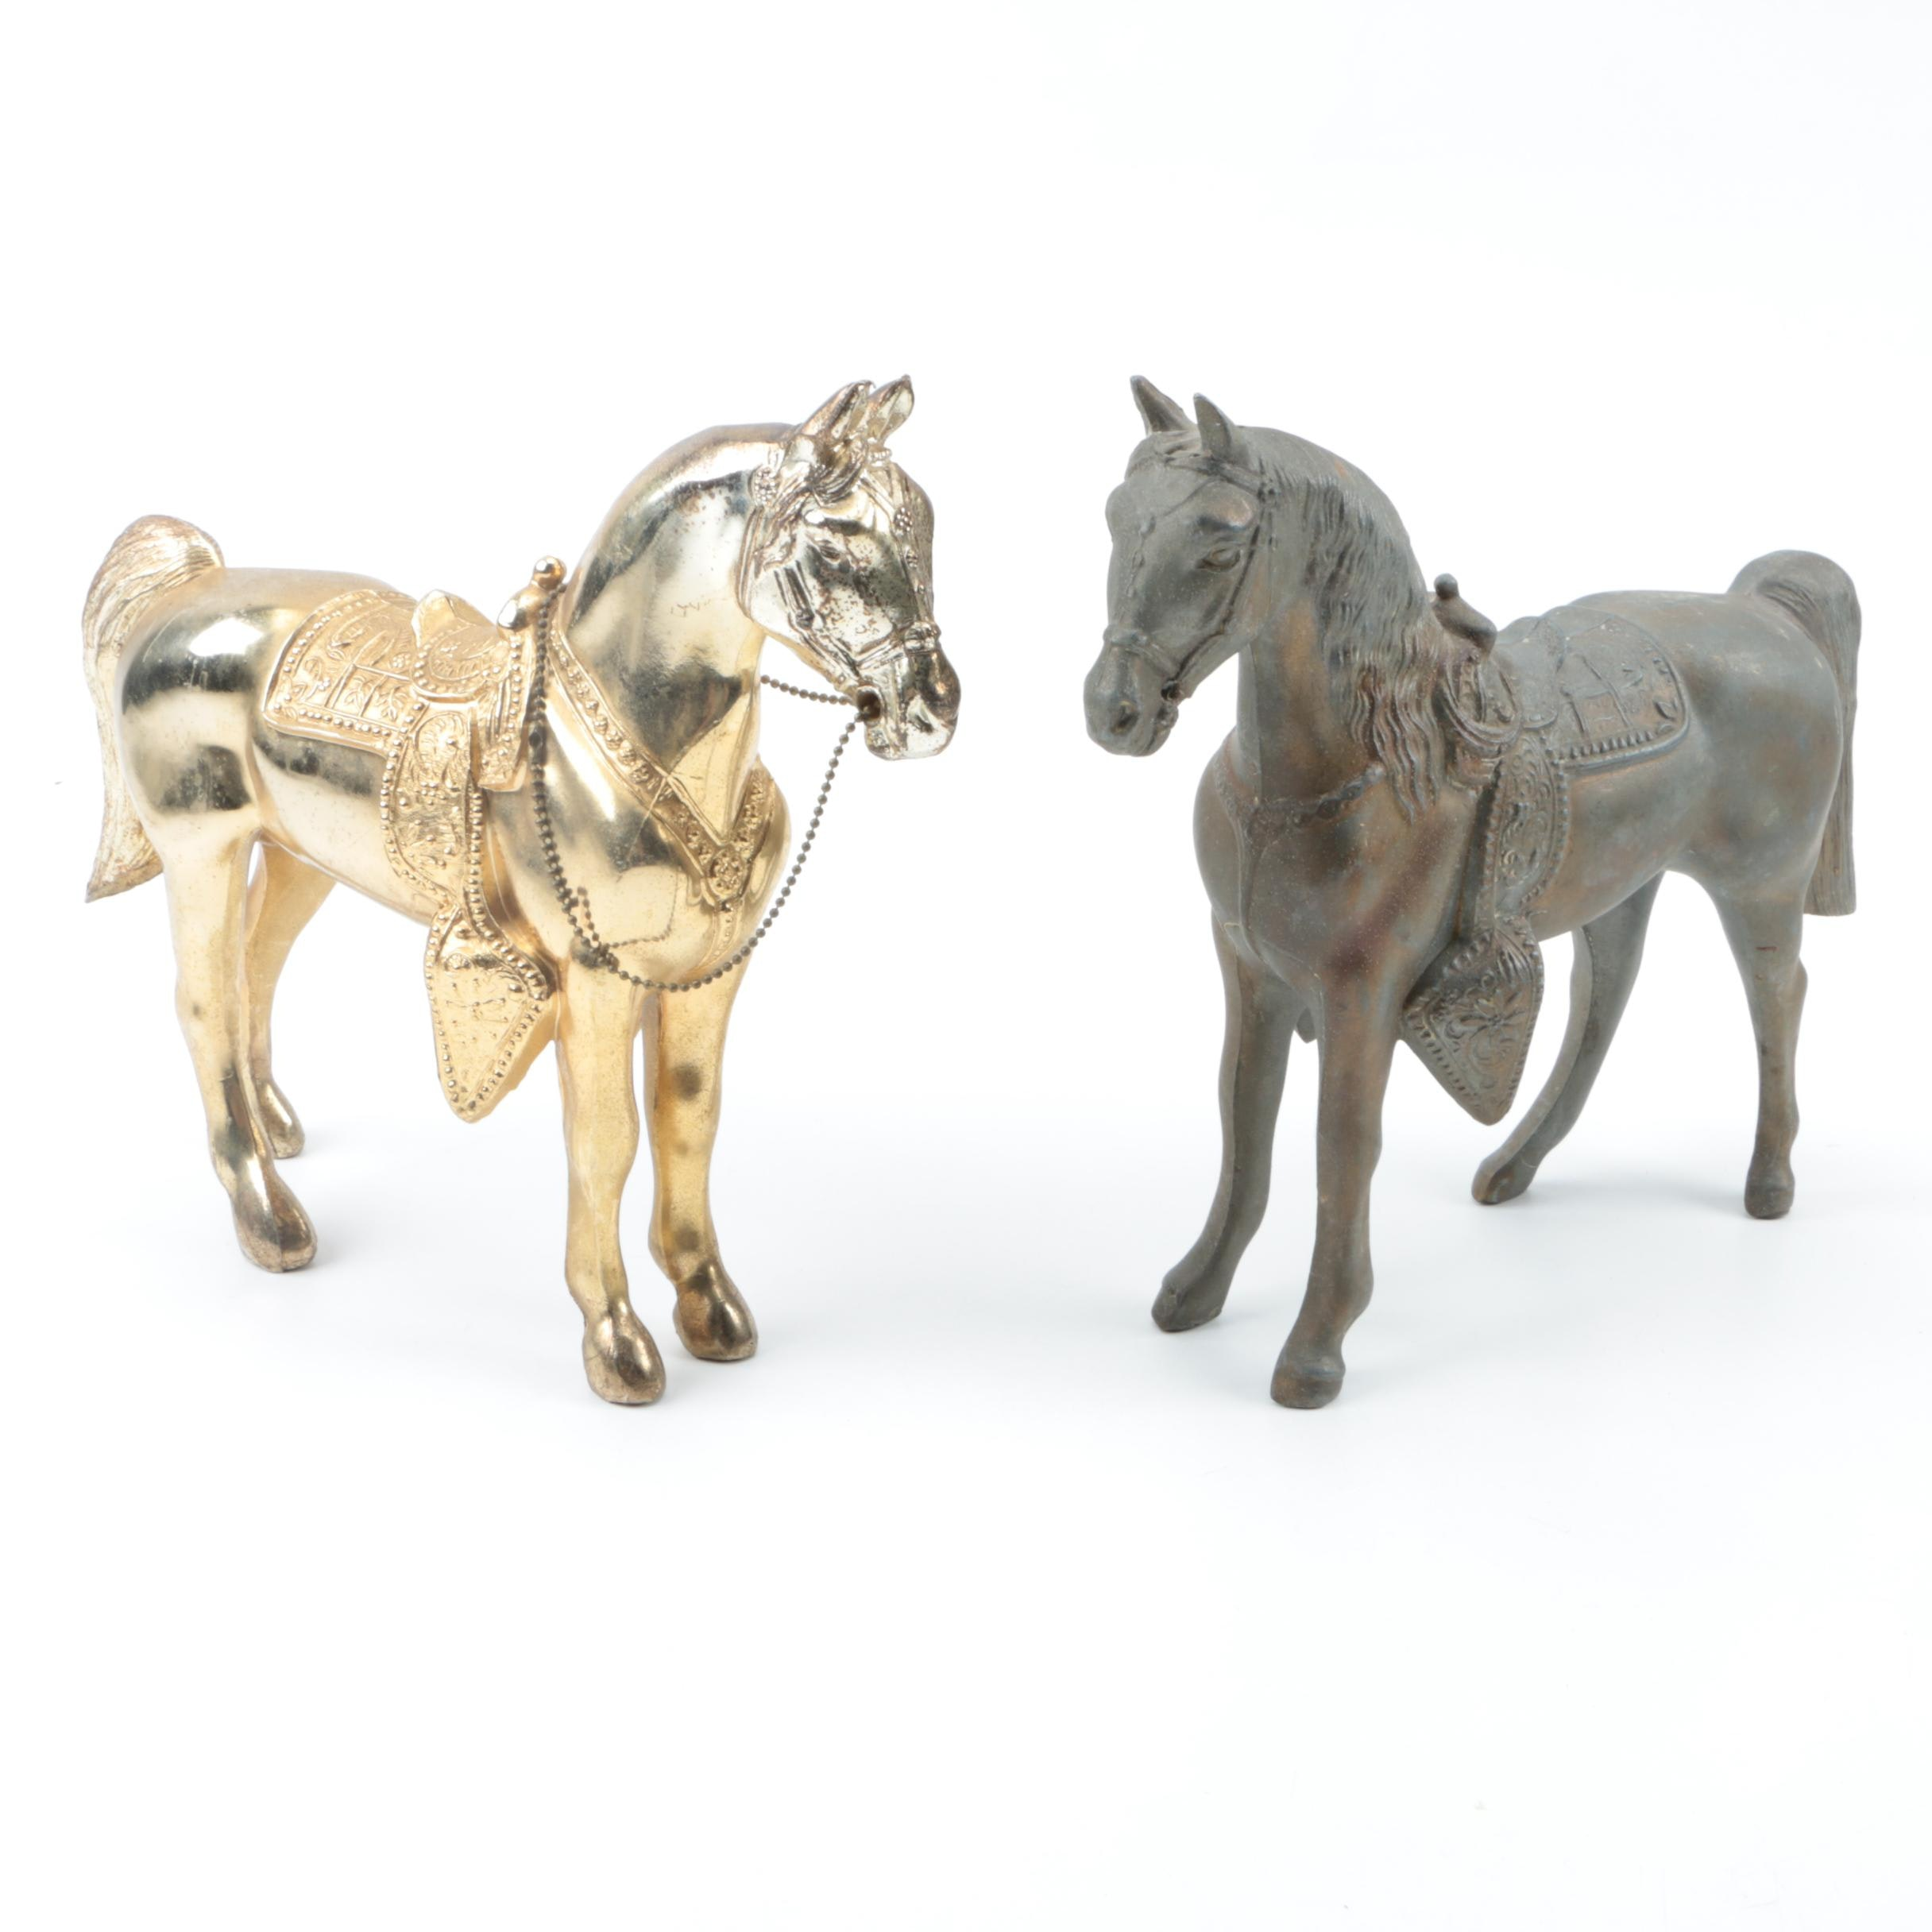 Pair of Metal Western Saddle Horse Figurines